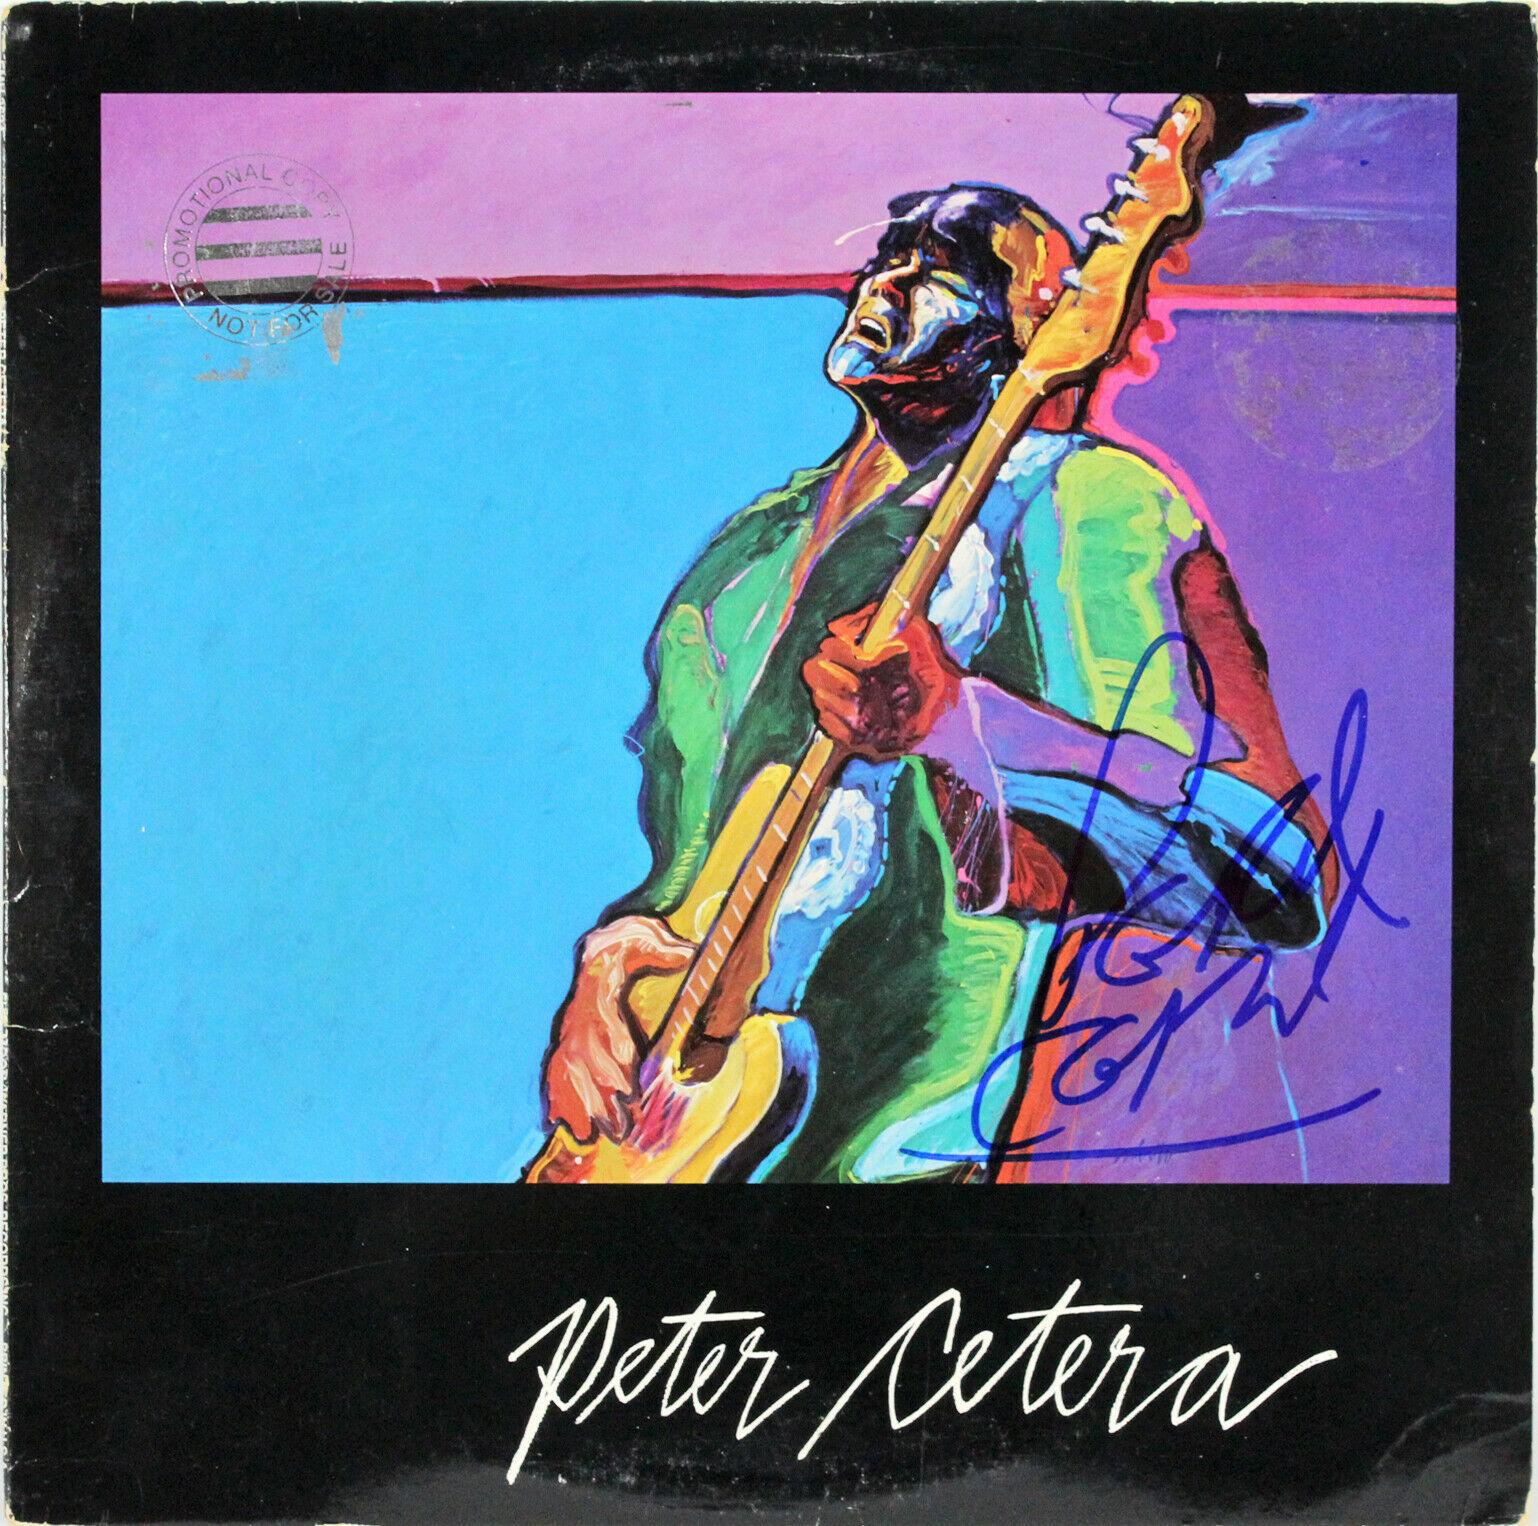 Peter Cetera Signed Self Titled Album Cover W Vinyl Bas